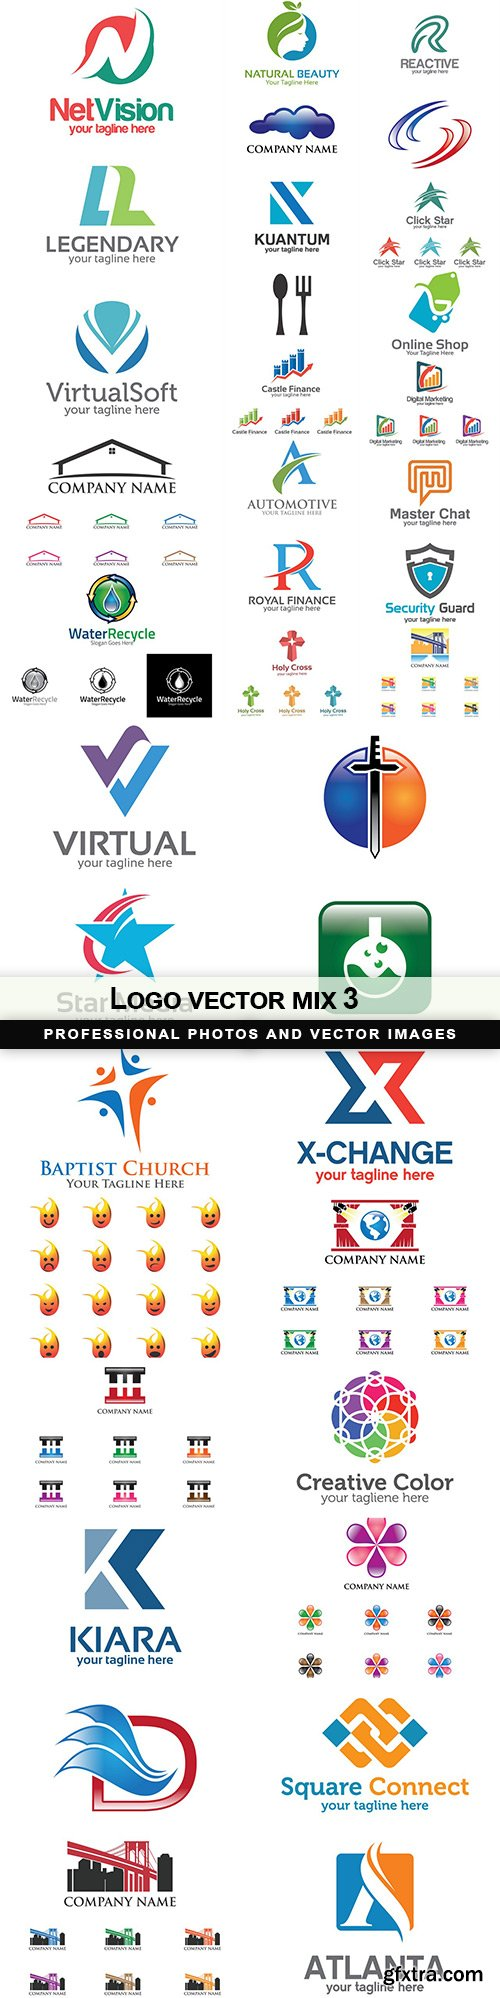 Logo vector mix 3